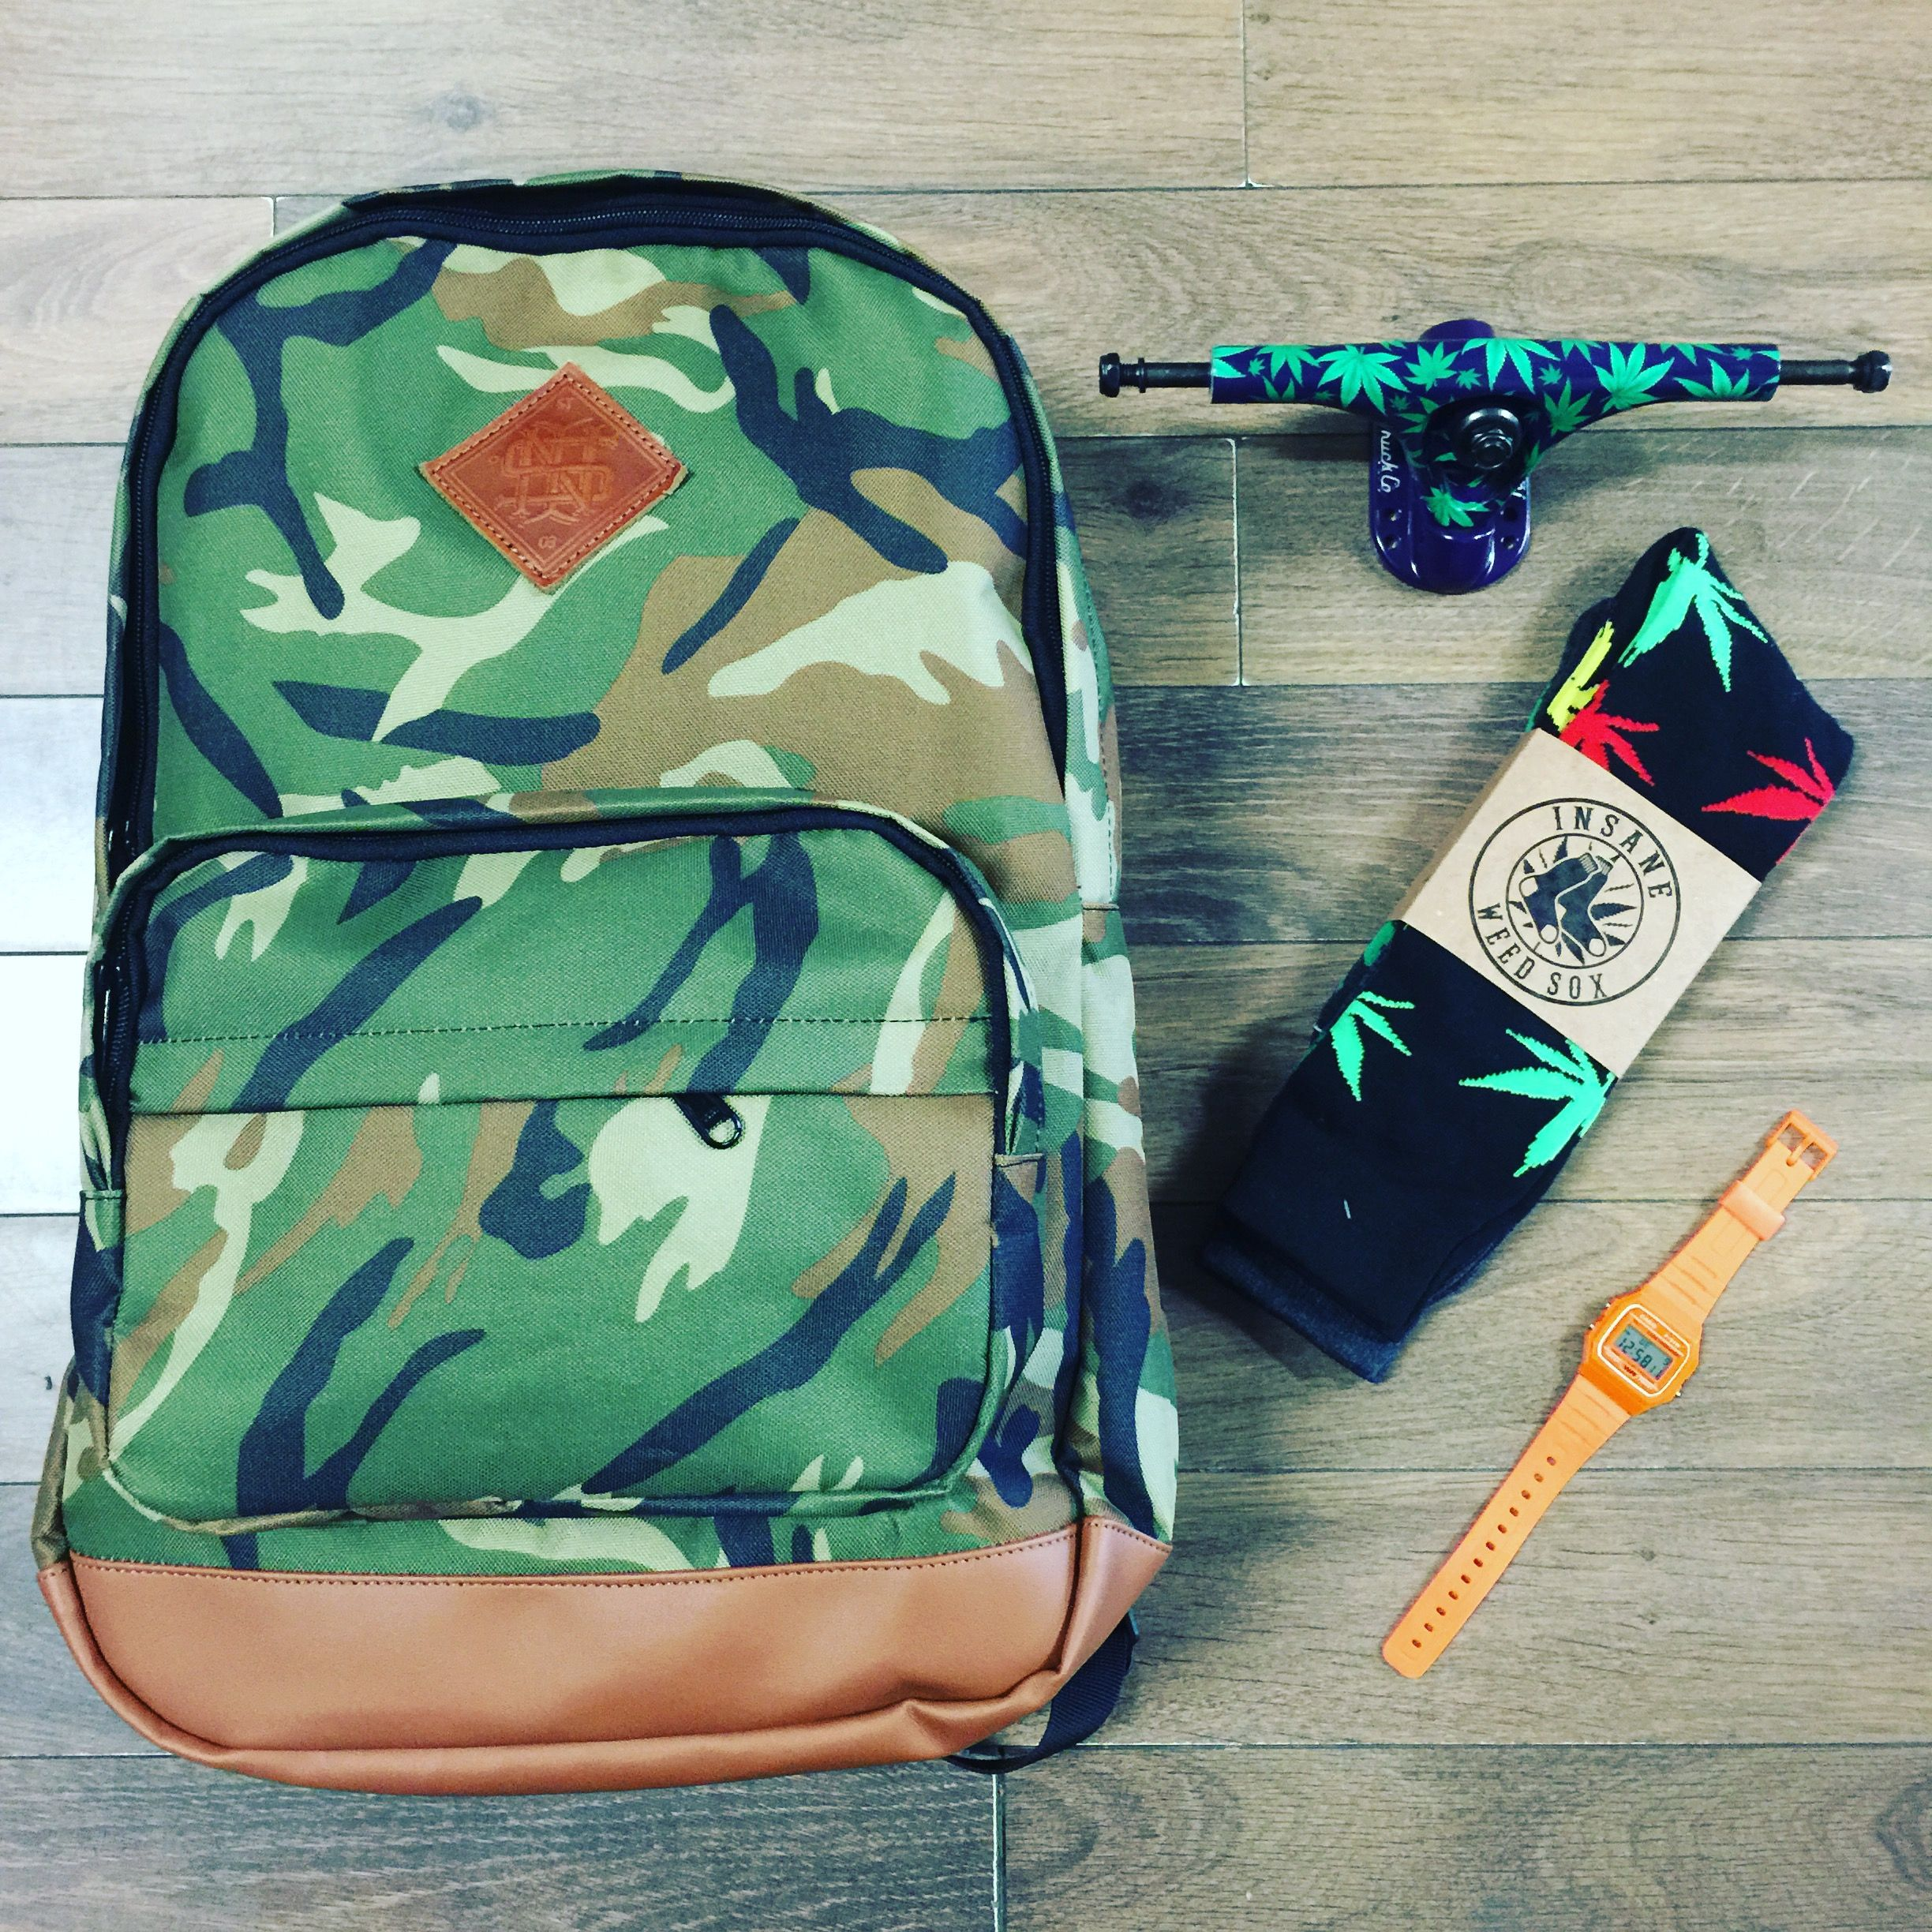 Mochila Insane Camo $350, Trucks Paris camo weed $700, Calcetines ...